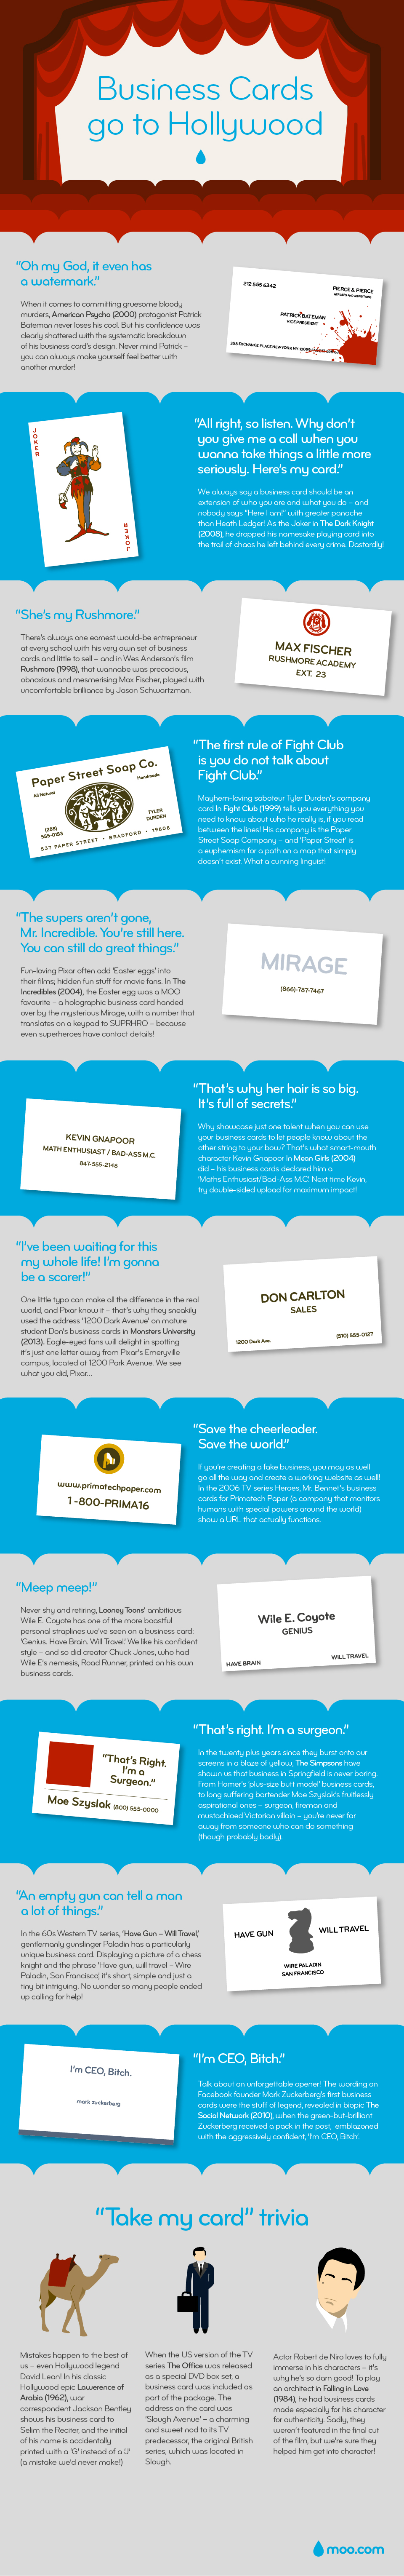 Hollywood Movie Business Cards